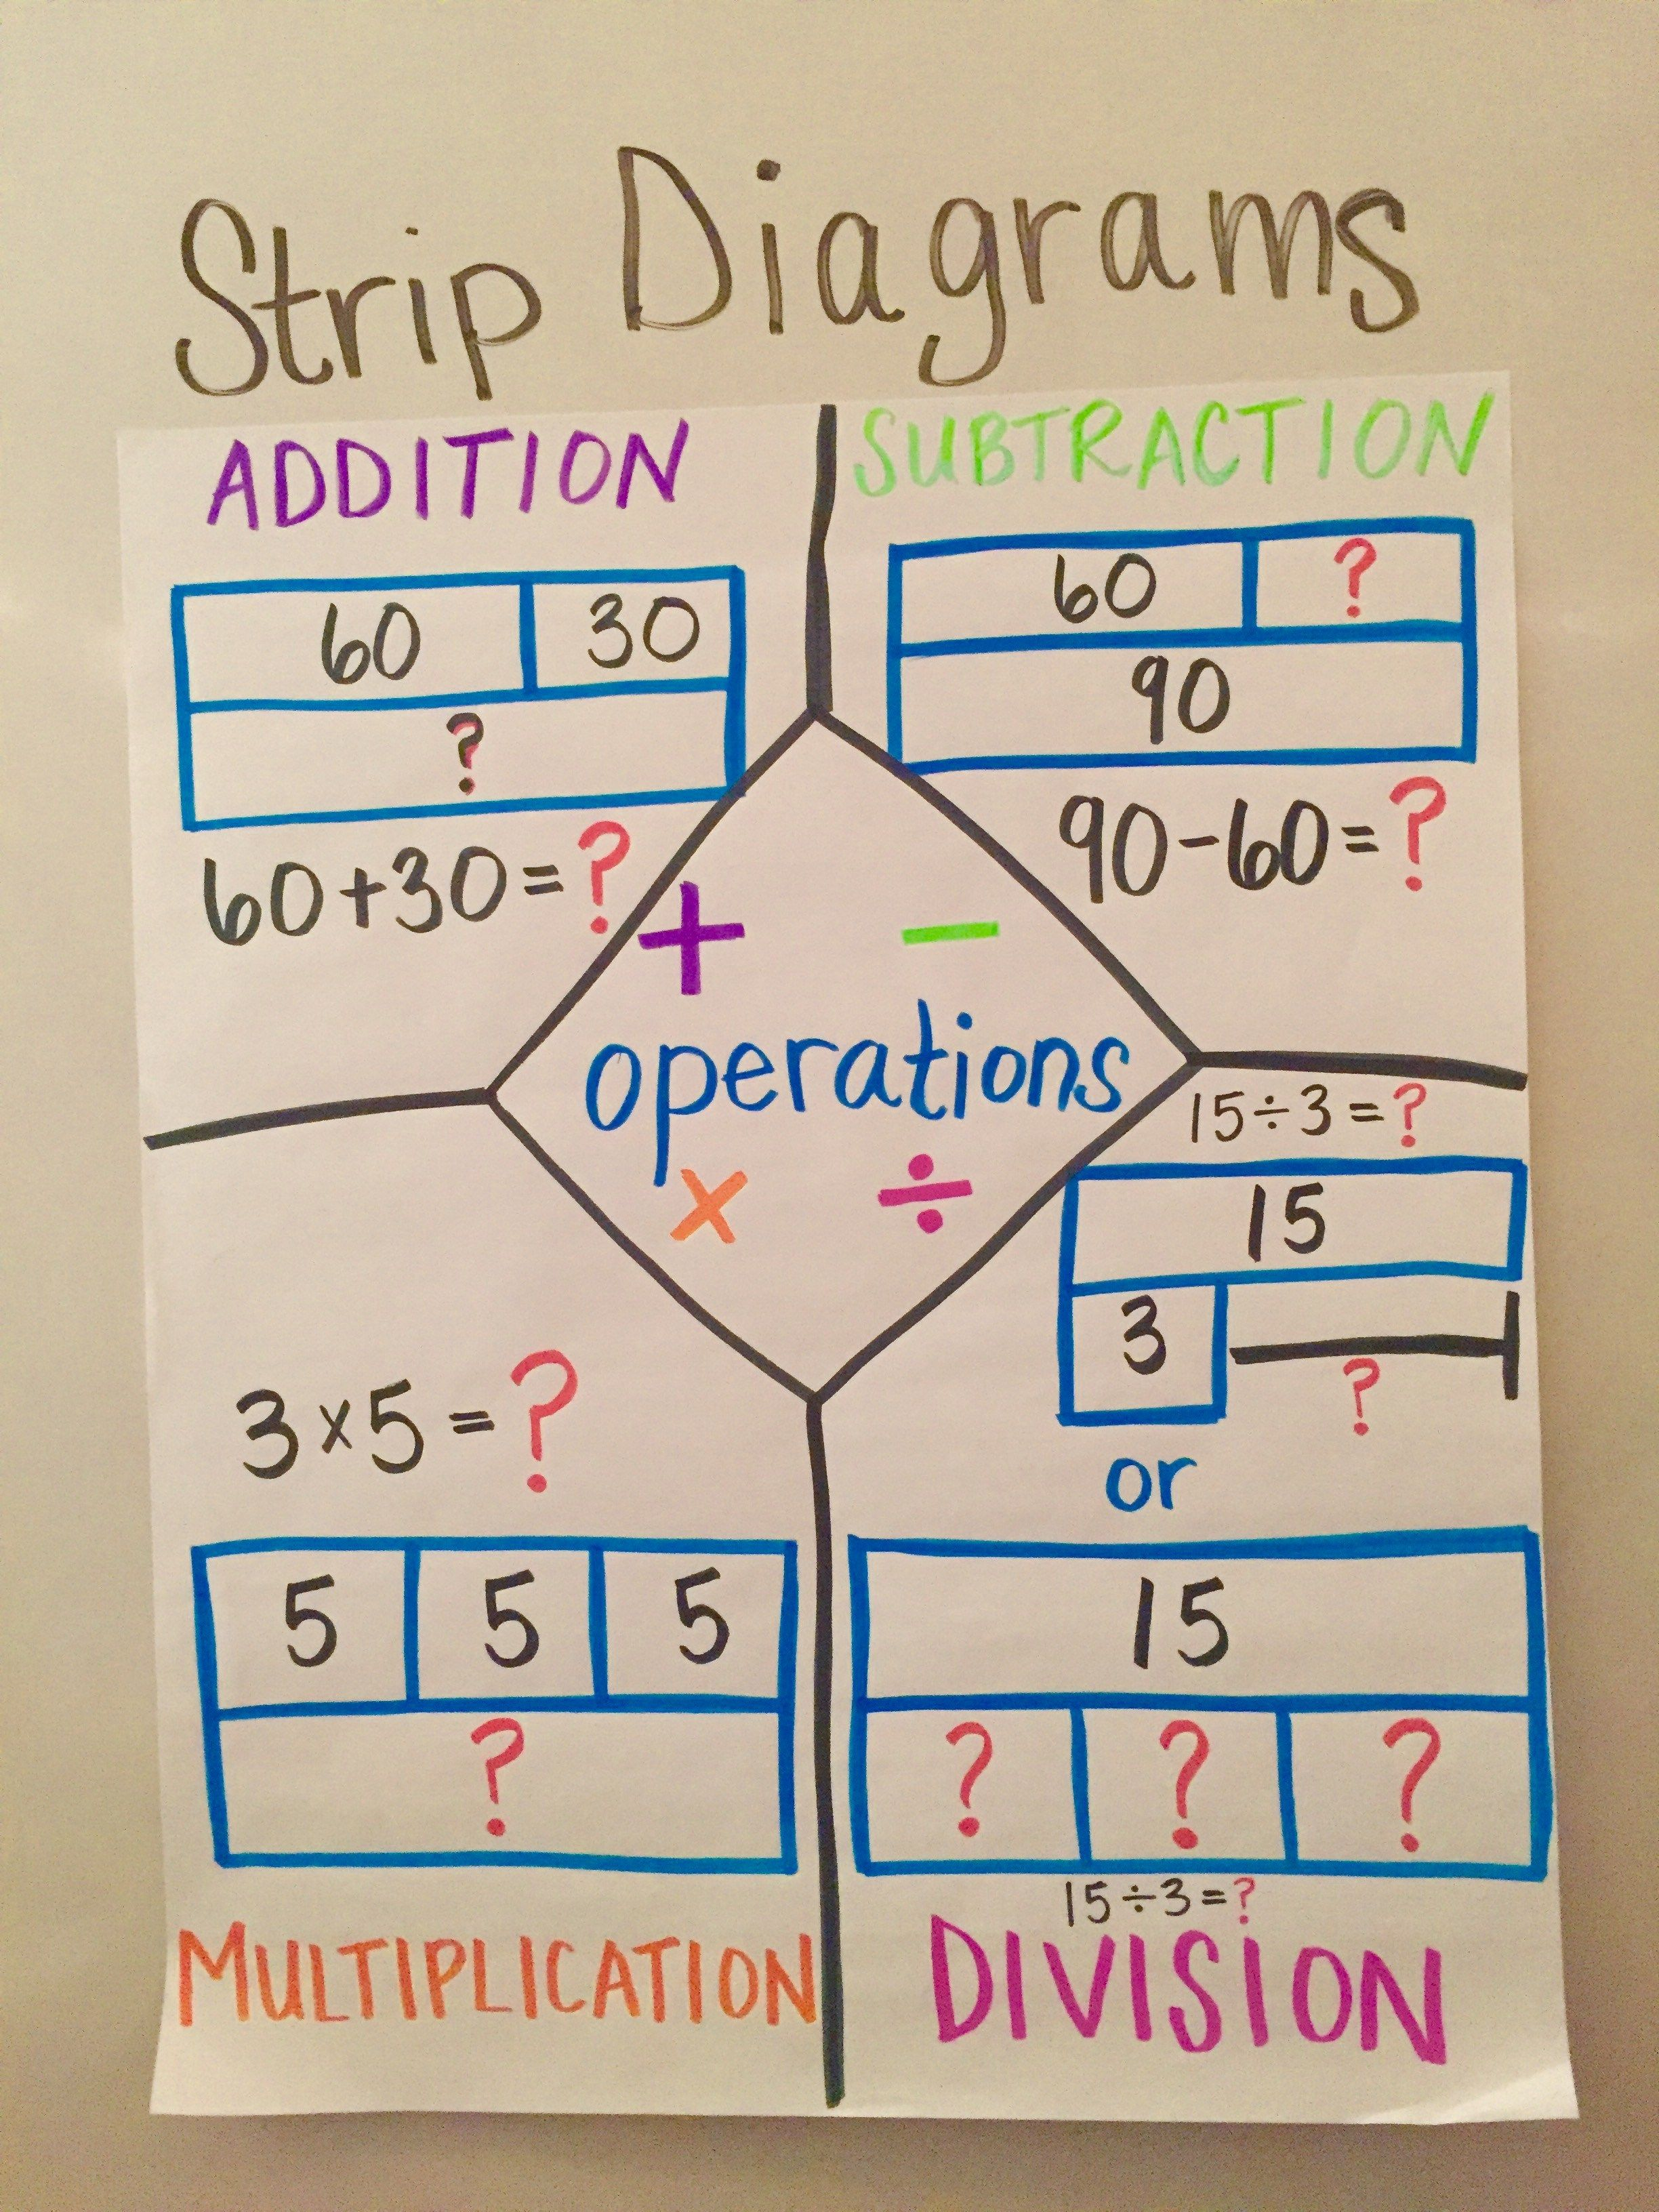 hight resolution of image result for strip diagram anchor chart